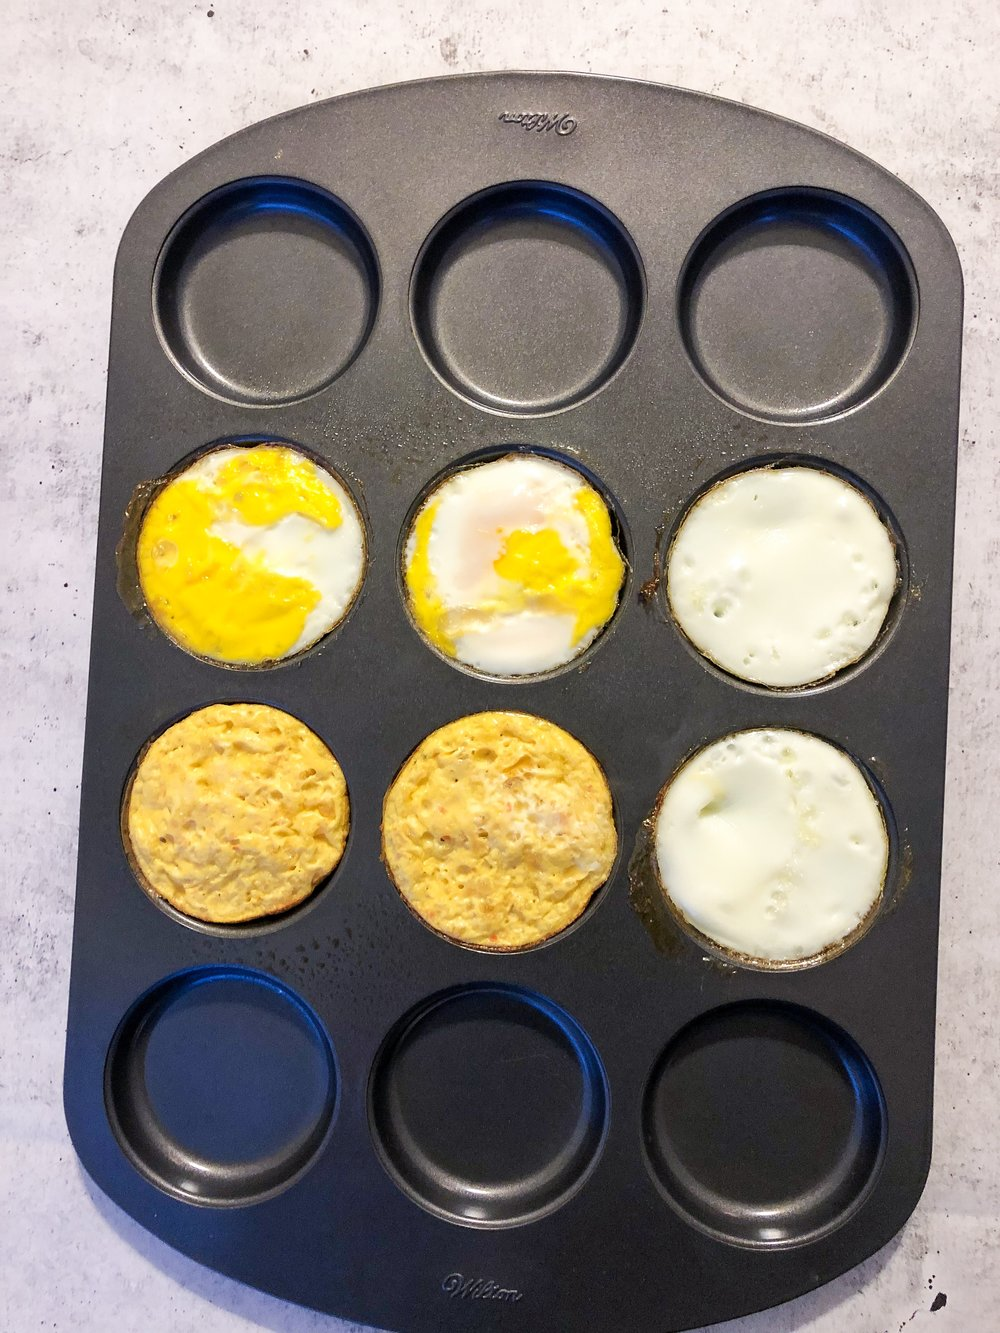 Top: Whole eggs, Bottom: Egg Beaters, Right sides: Egg whites